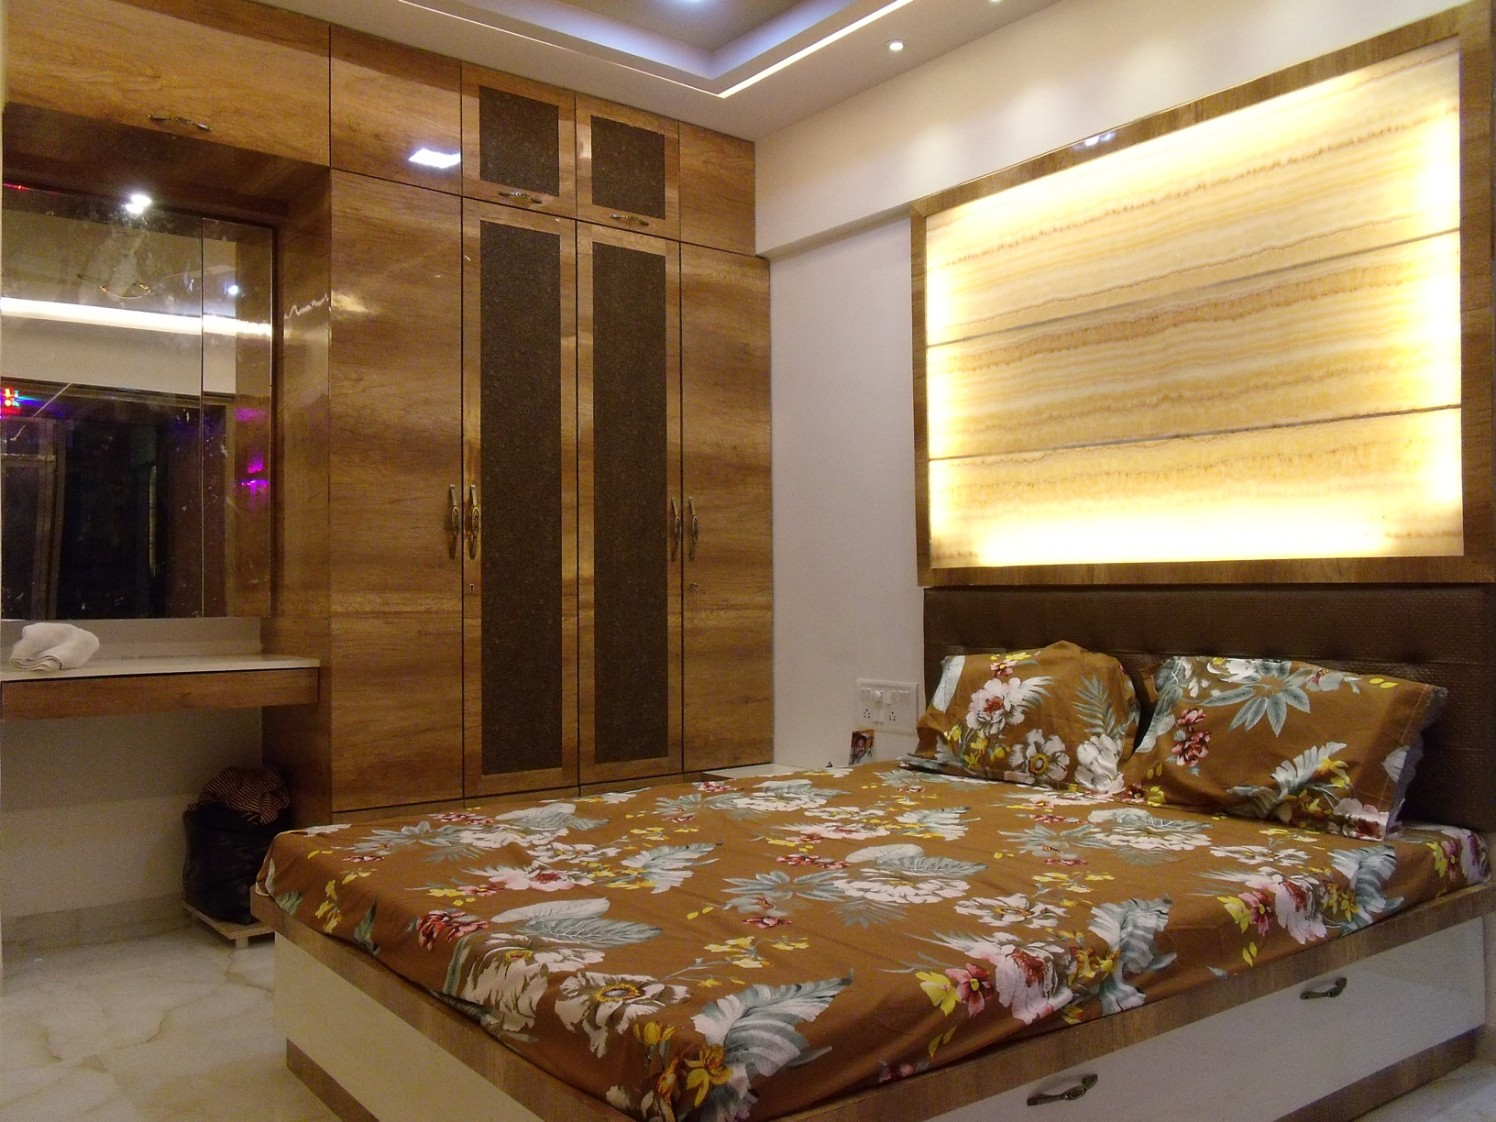 Low Rise Wooden Bed With Wardrobe by Prashant Koli Bedroom Contemporary | Interior Design Photos & Ideas